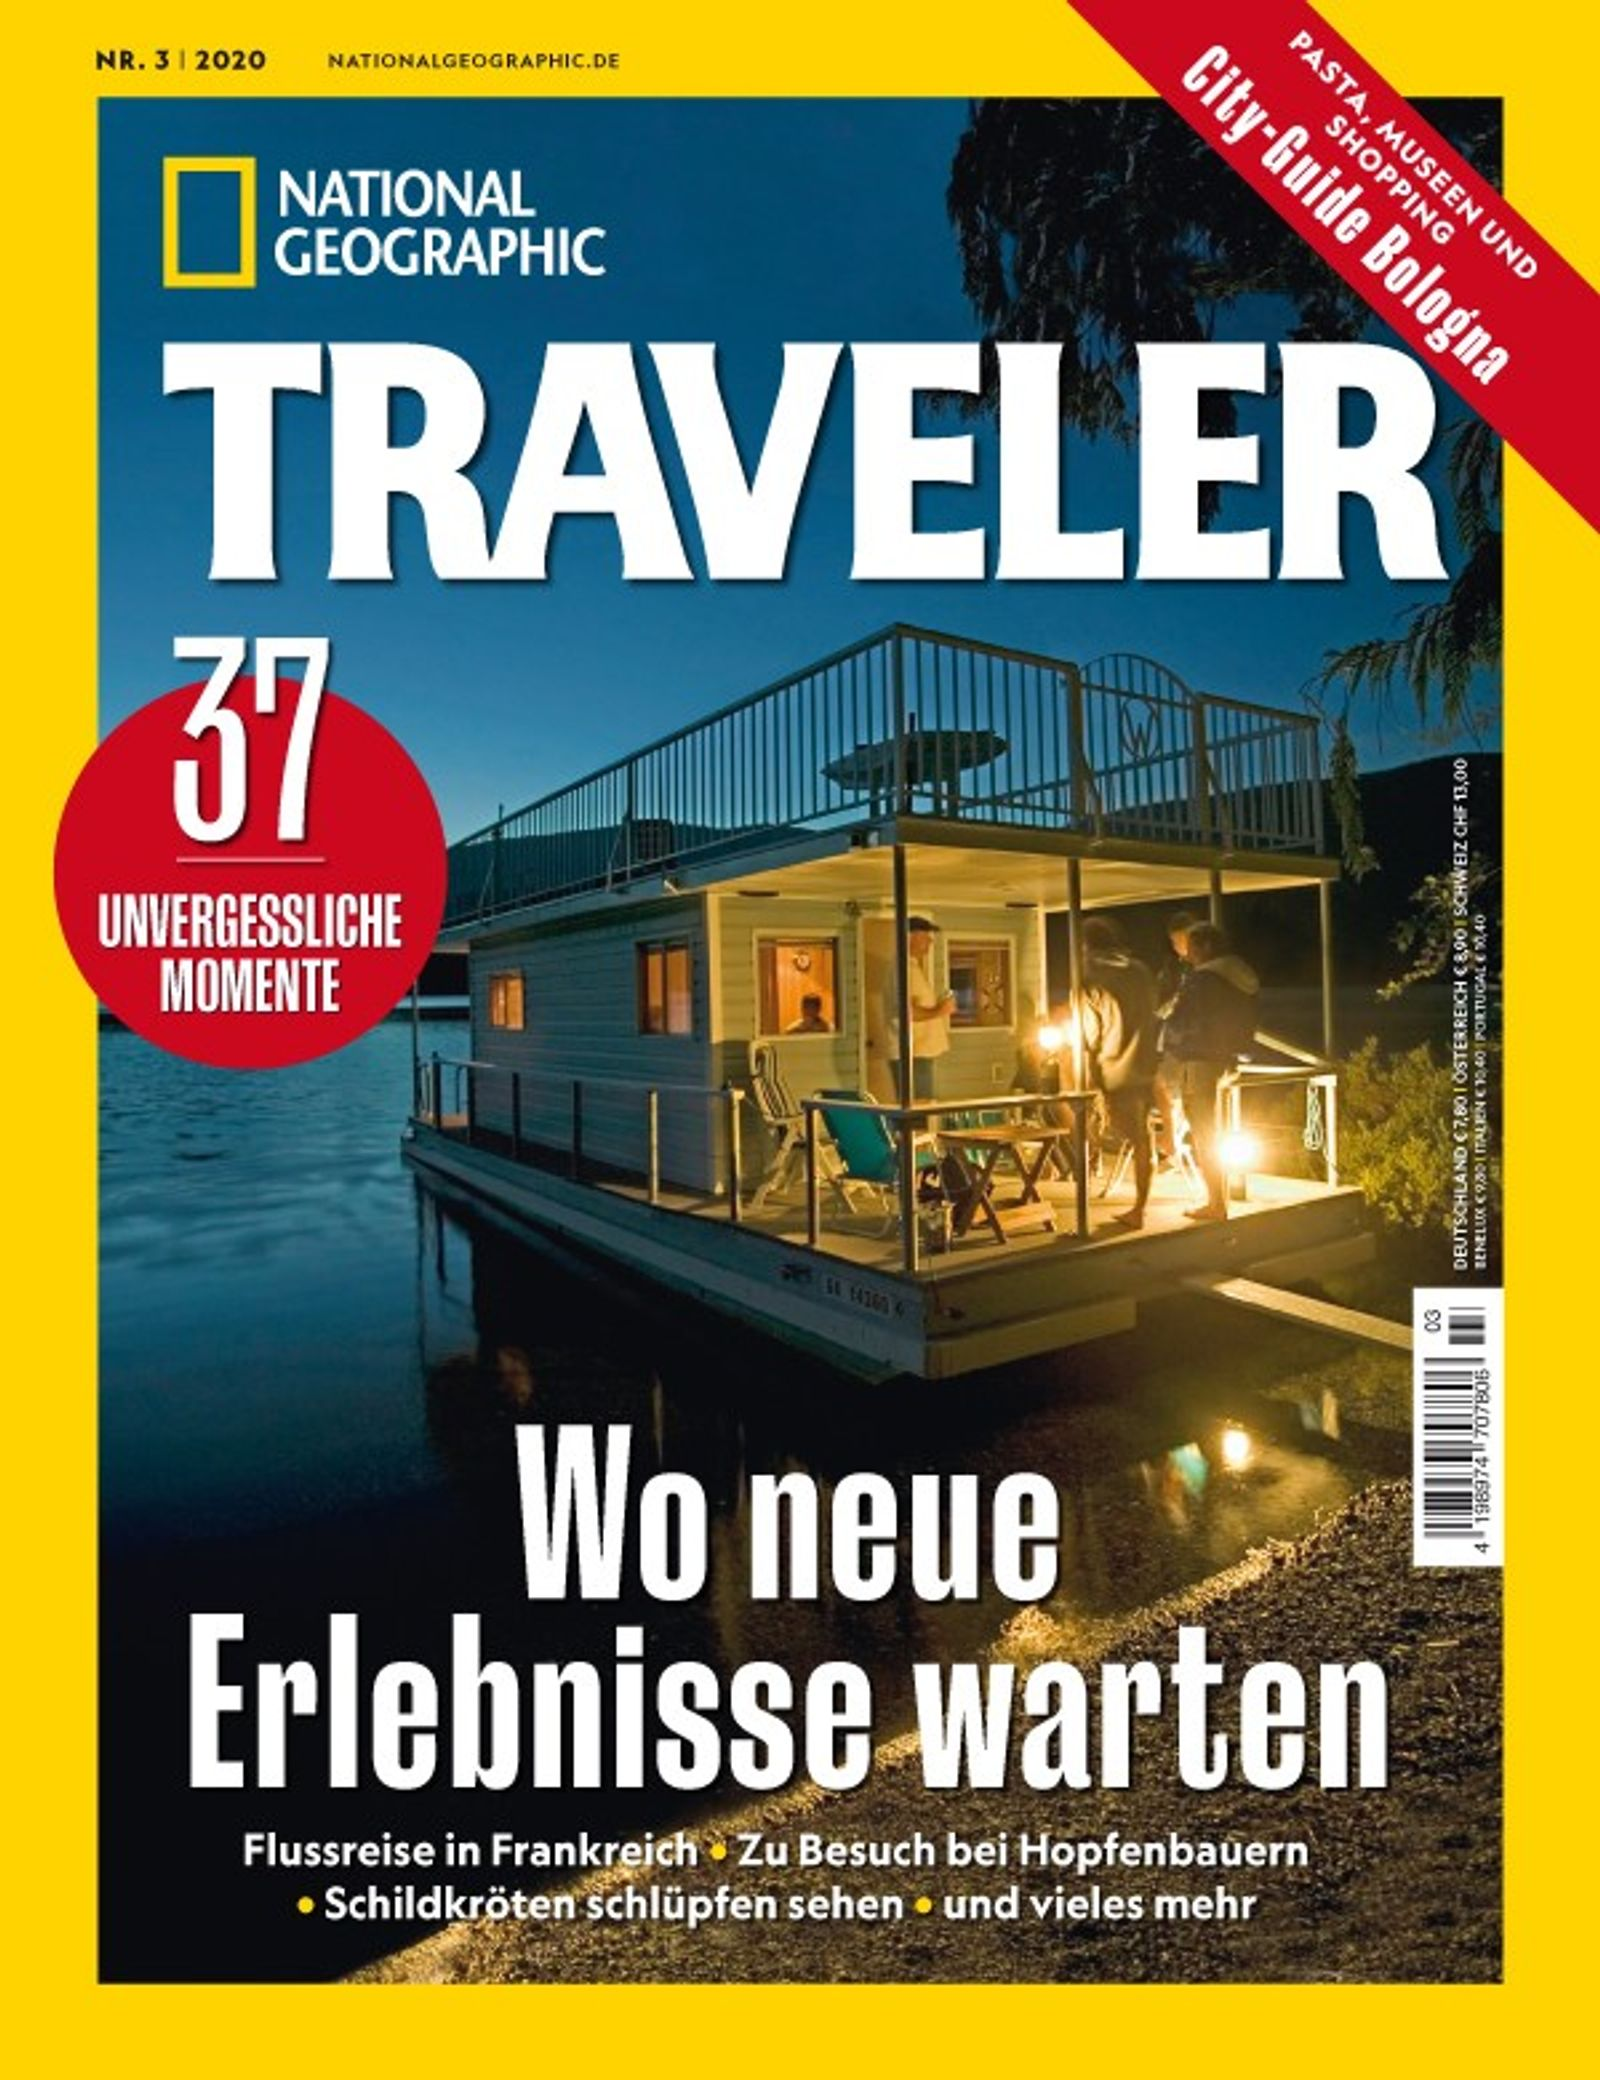 NATIONAL GEOGRAPHIC Traveler 3_20